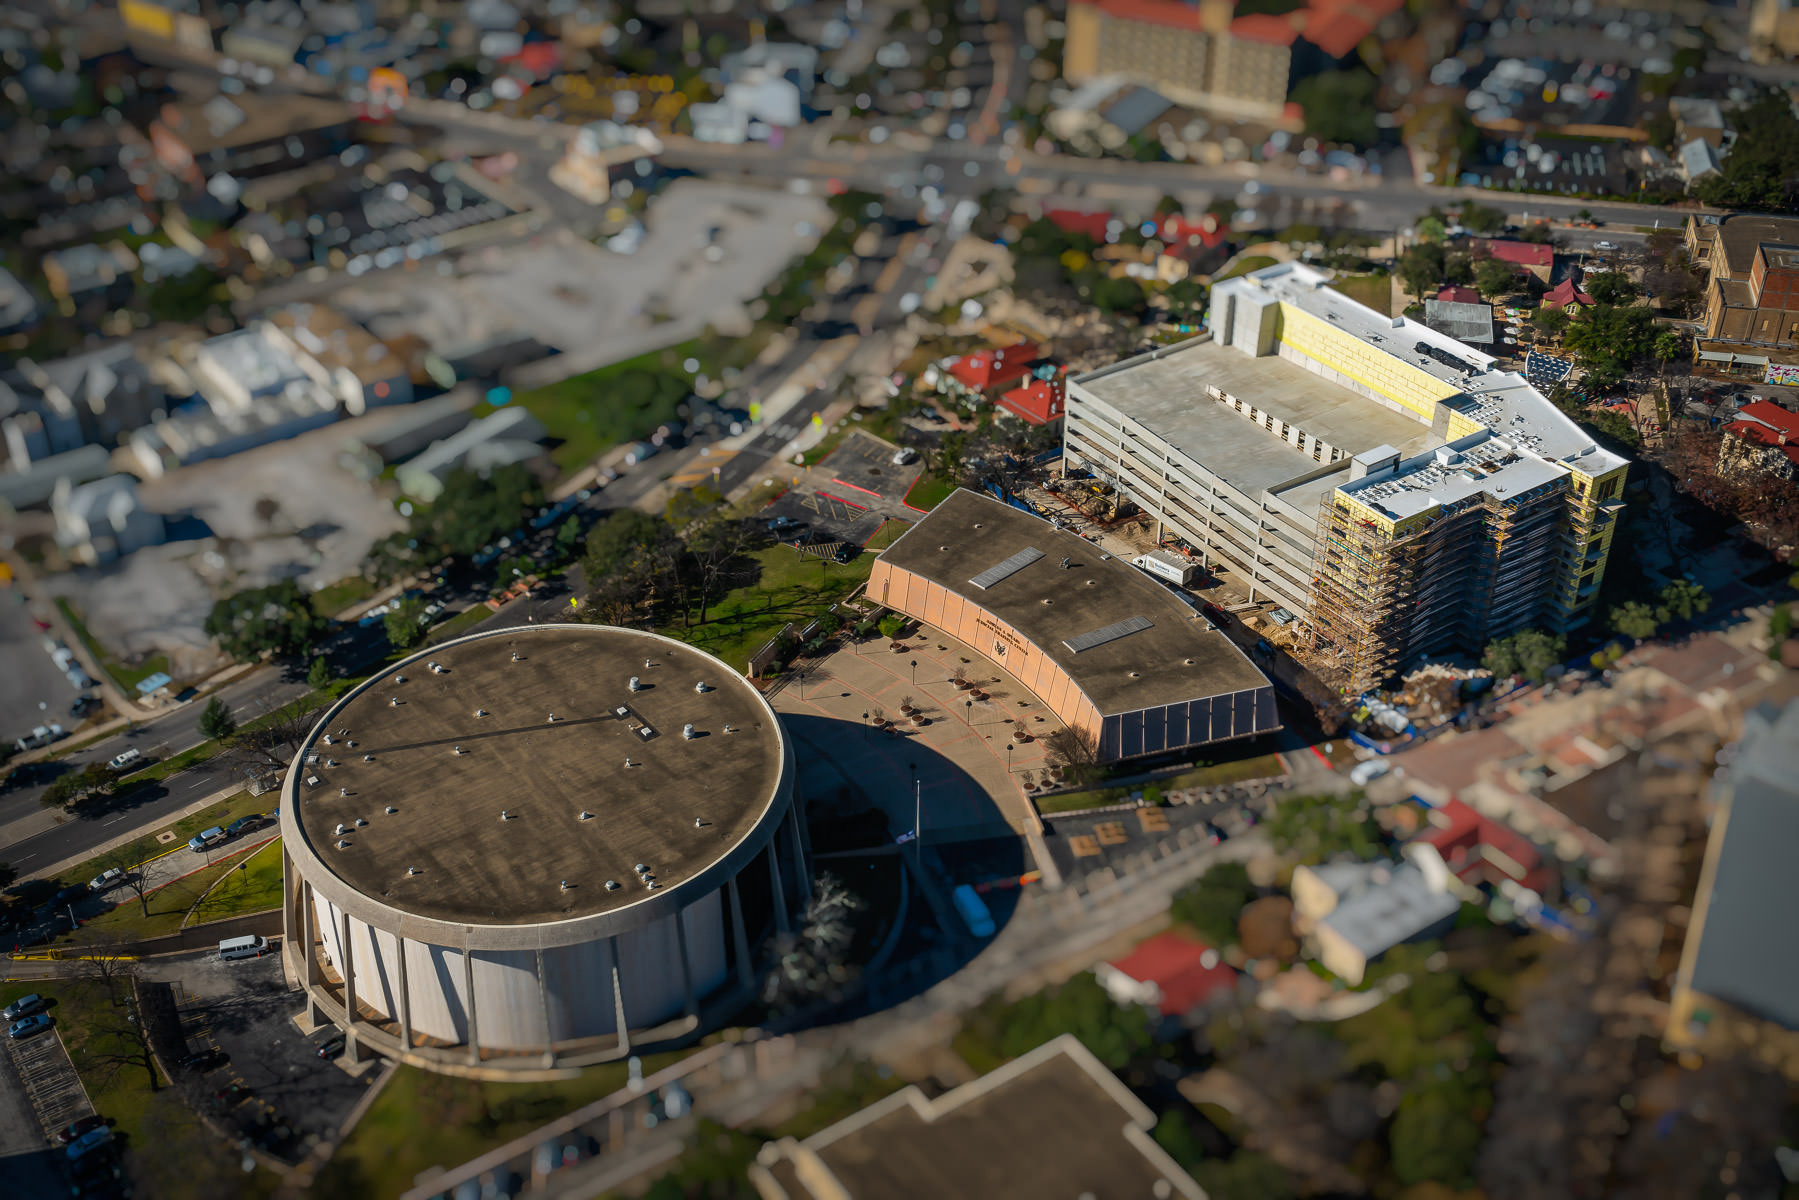 San Antonio, Texas' John H. Wood, Jr. Federal Courthouse—originally build as a theatre for HemisFair '68—as seen from the nearby Tower of the Americas.